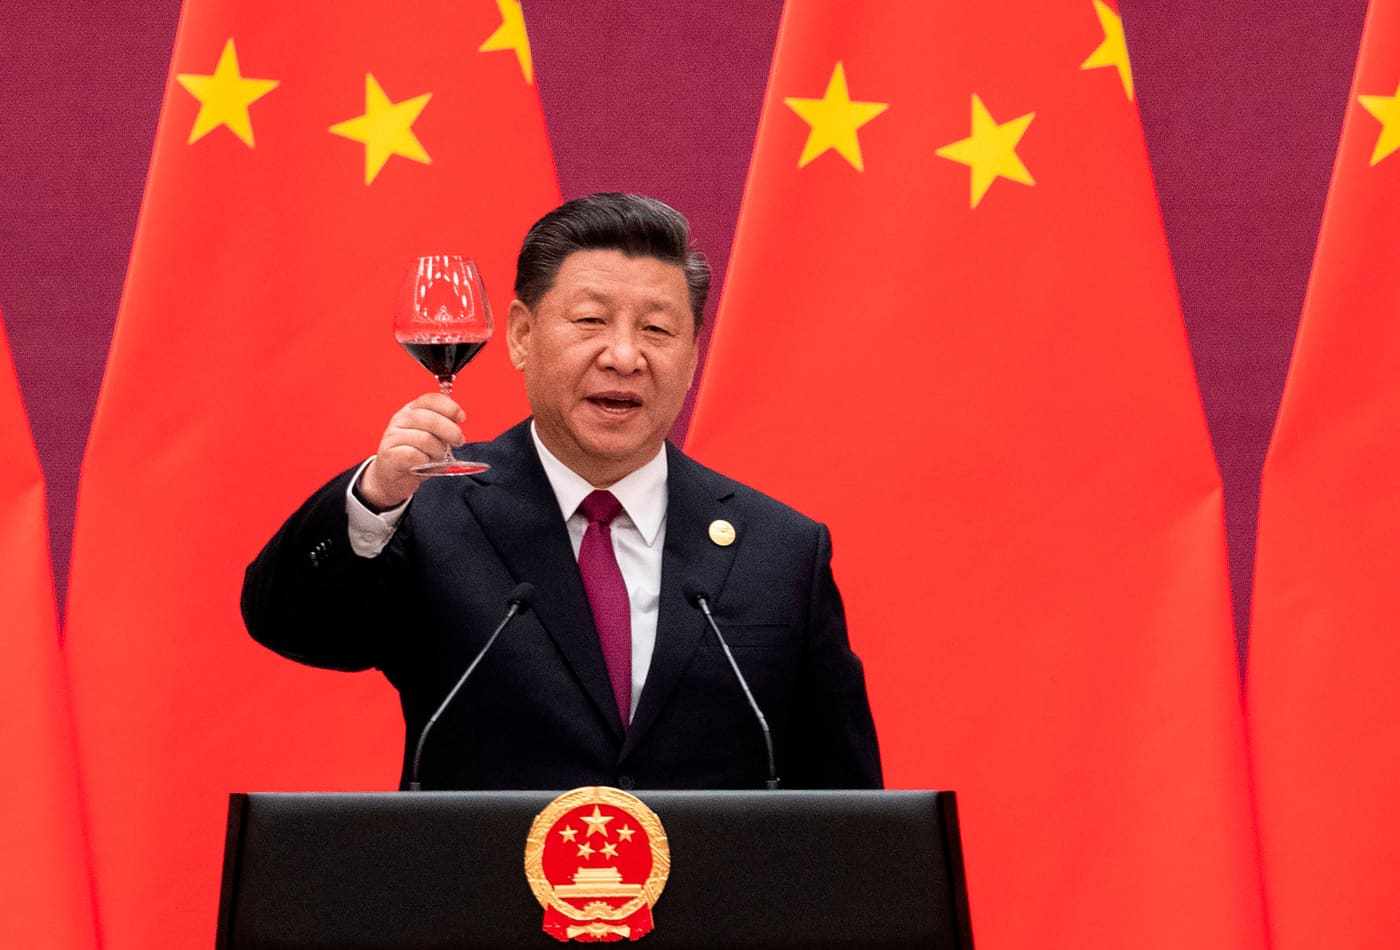 Here's how China became the world's No. 2 economy and how it plans on being No. 1